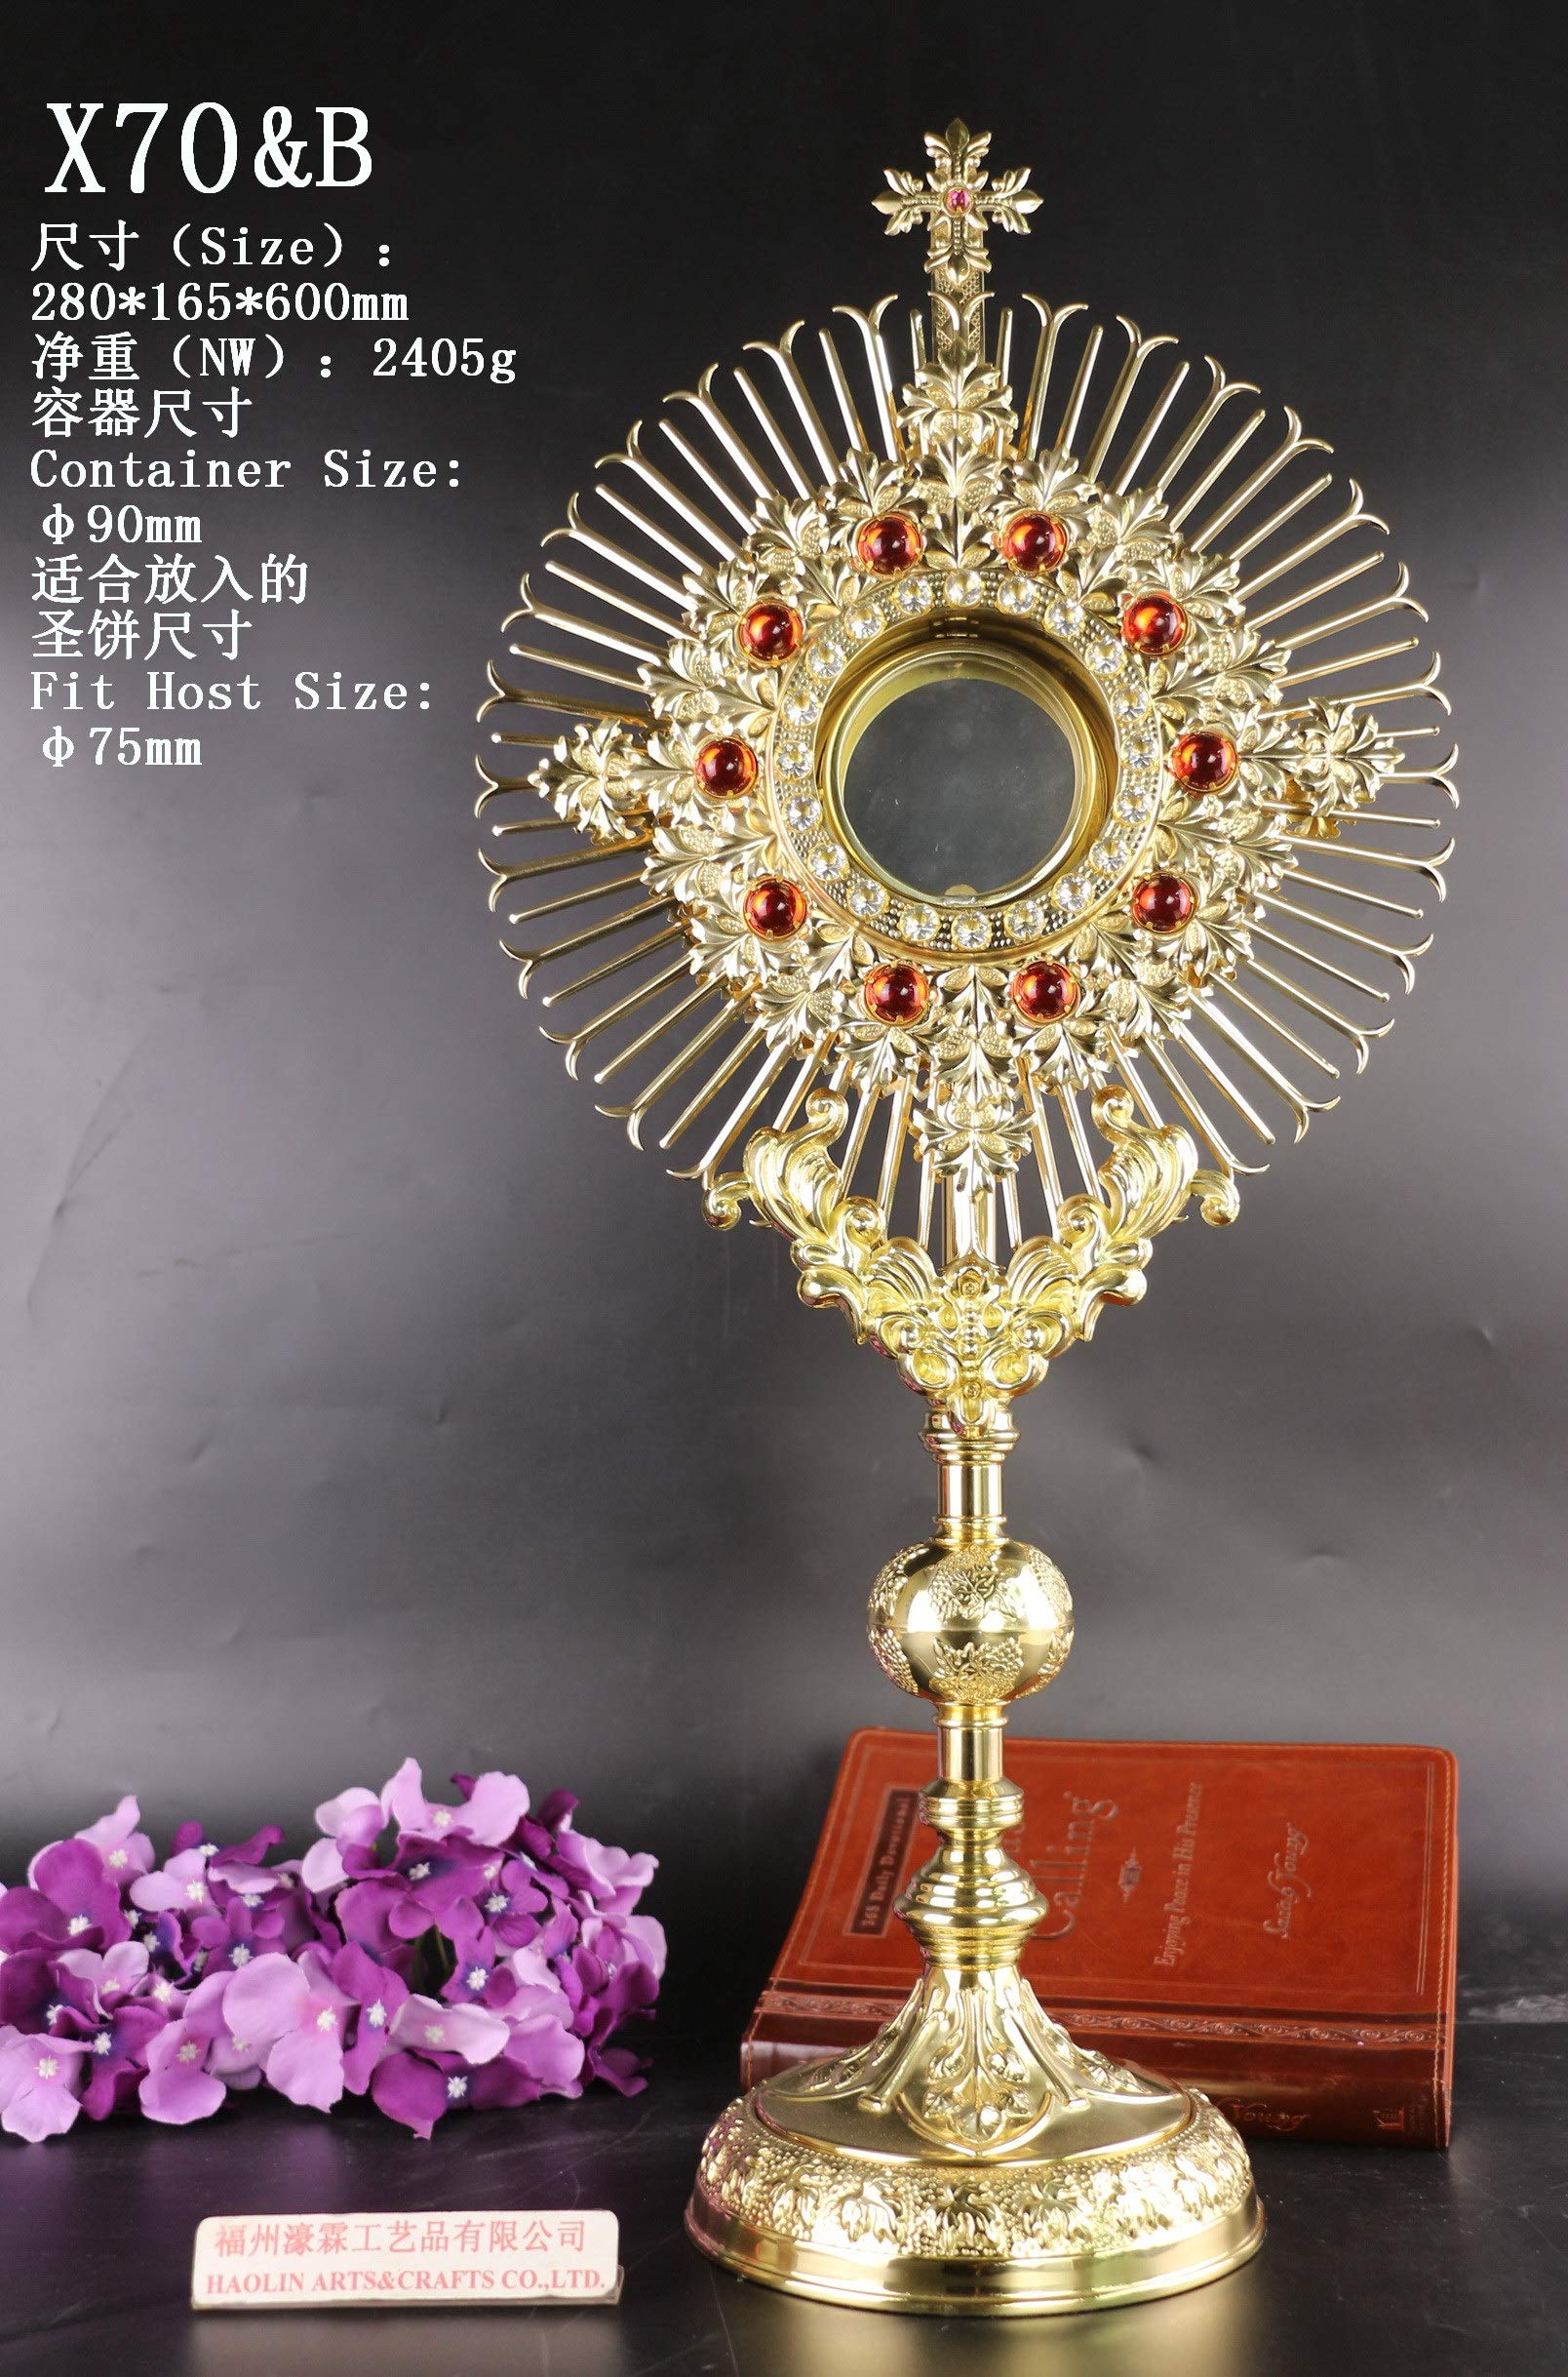 Rare Fine Monstrance with Lunette, Beautiful and Affordable! 23 3/5'' High X70&B